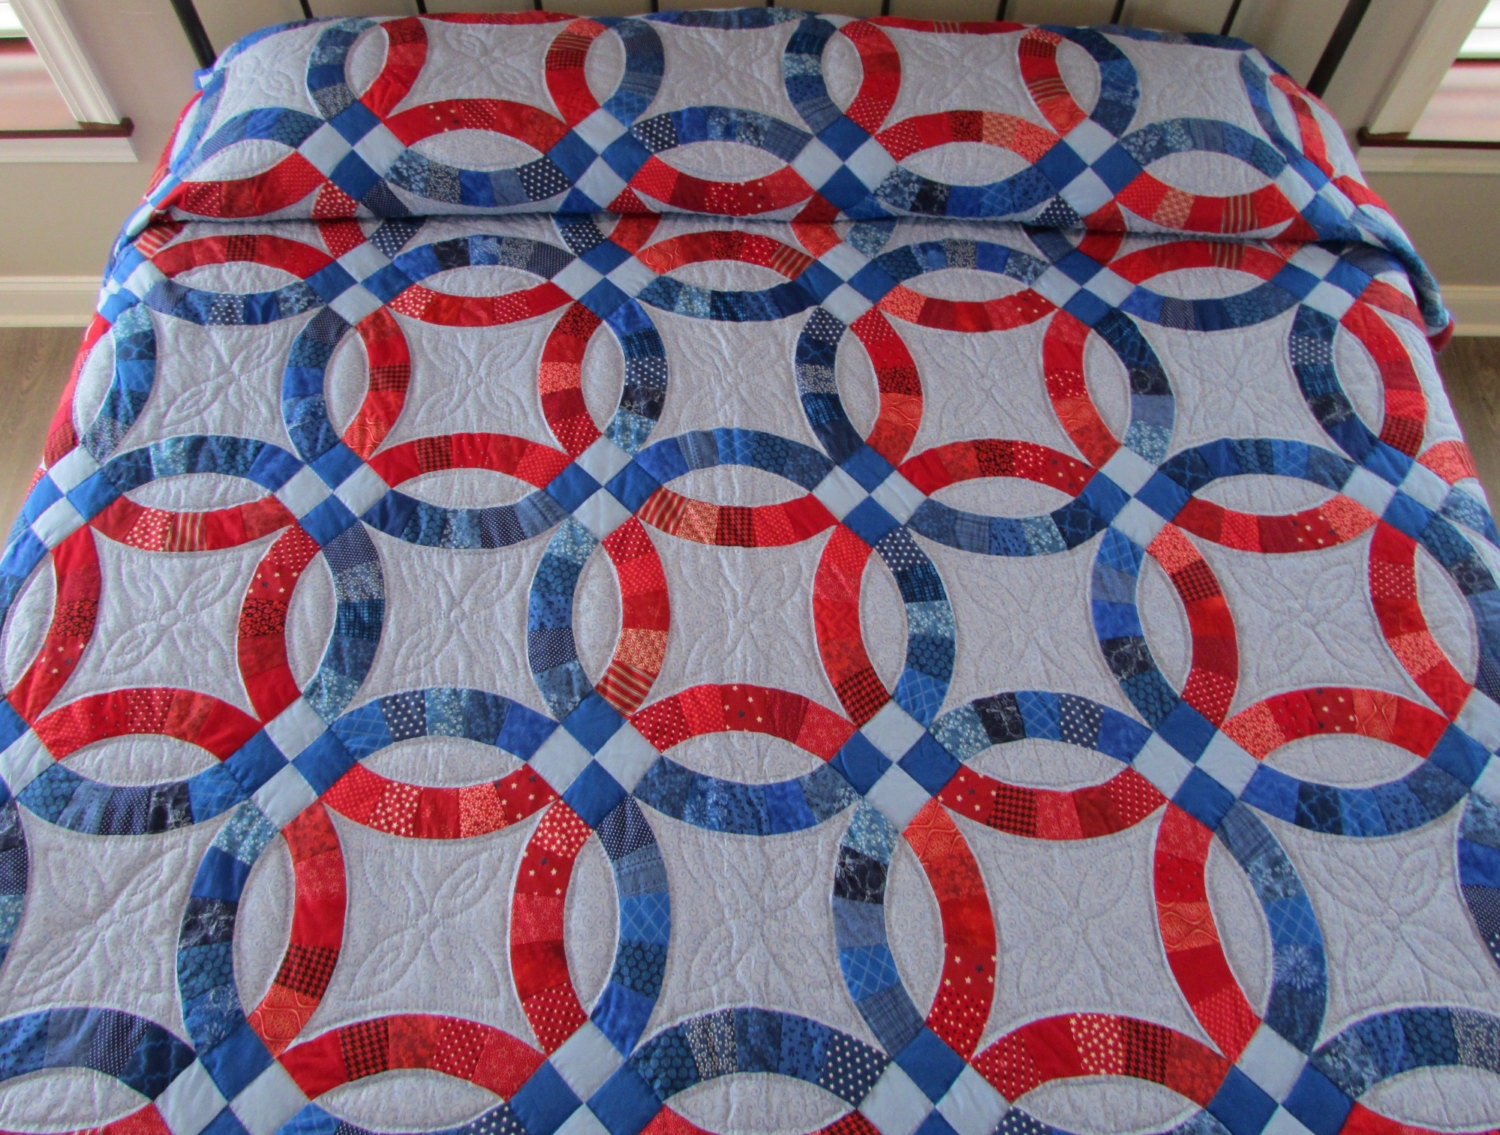 double wedding ring quilt hand made quilt king size quilt red and blue - Wedding Ring Quilts